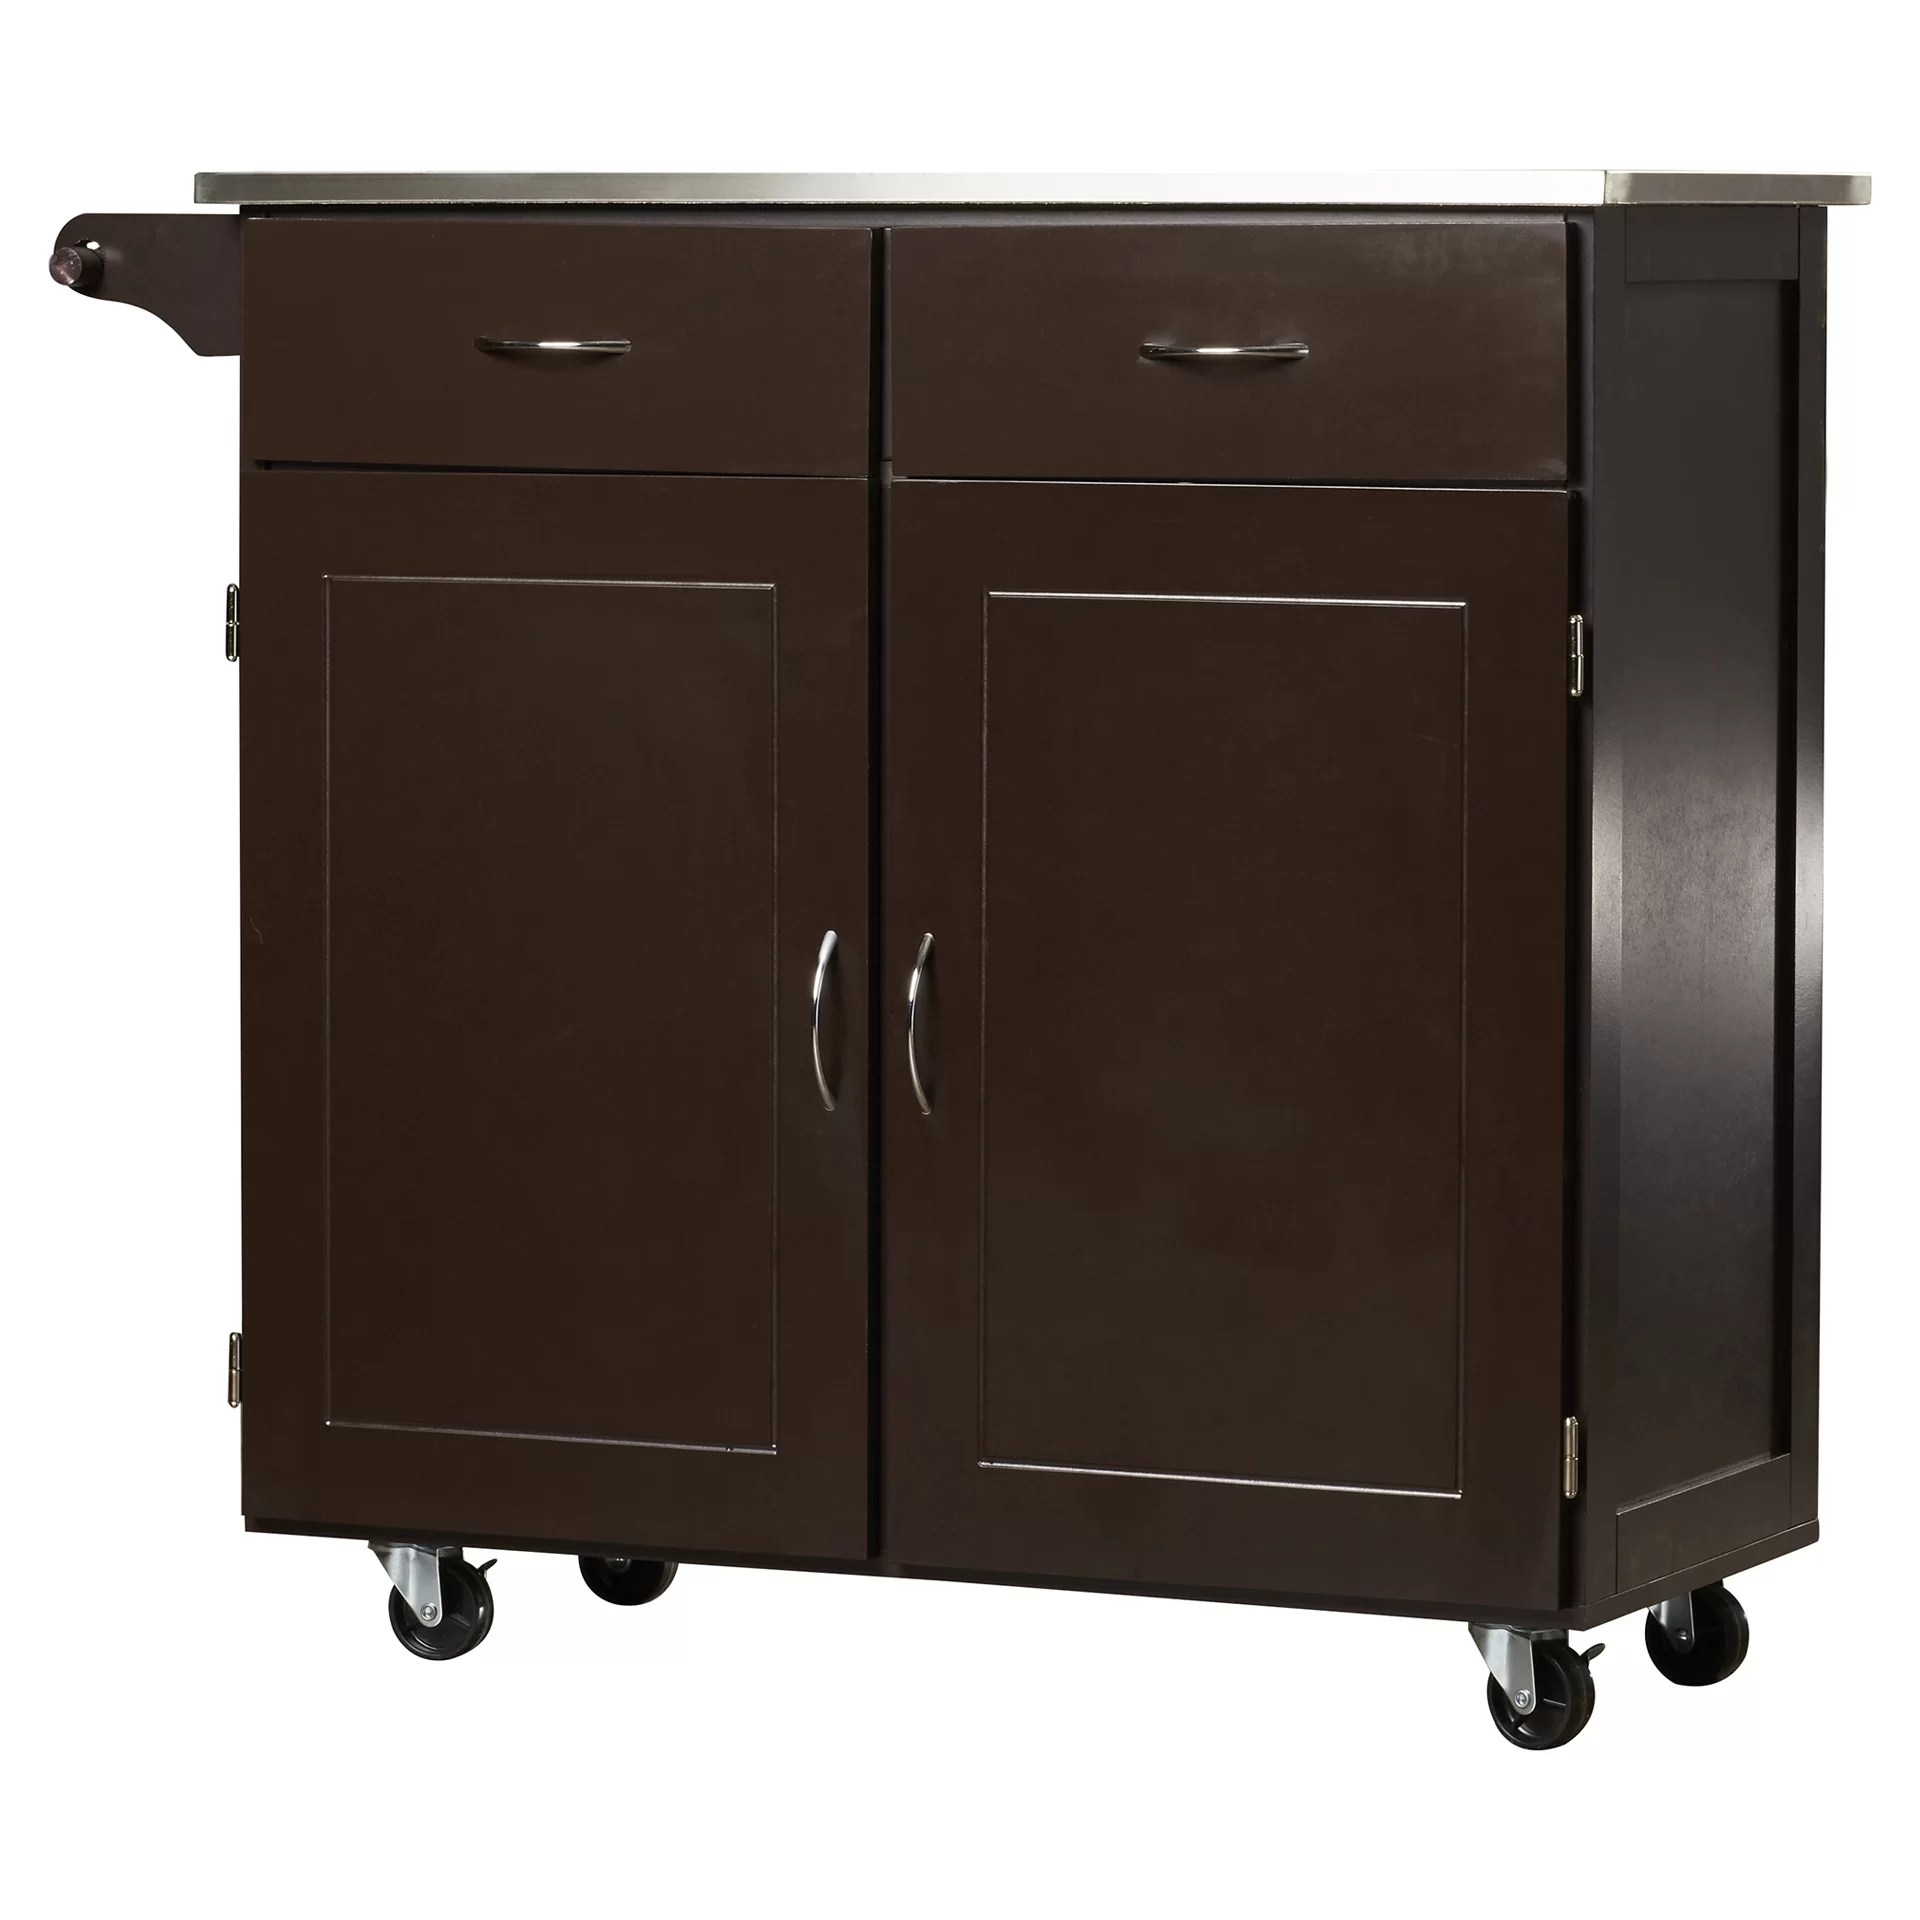 kitchen cart stainless steel modular countertops brayden studio dayville large with